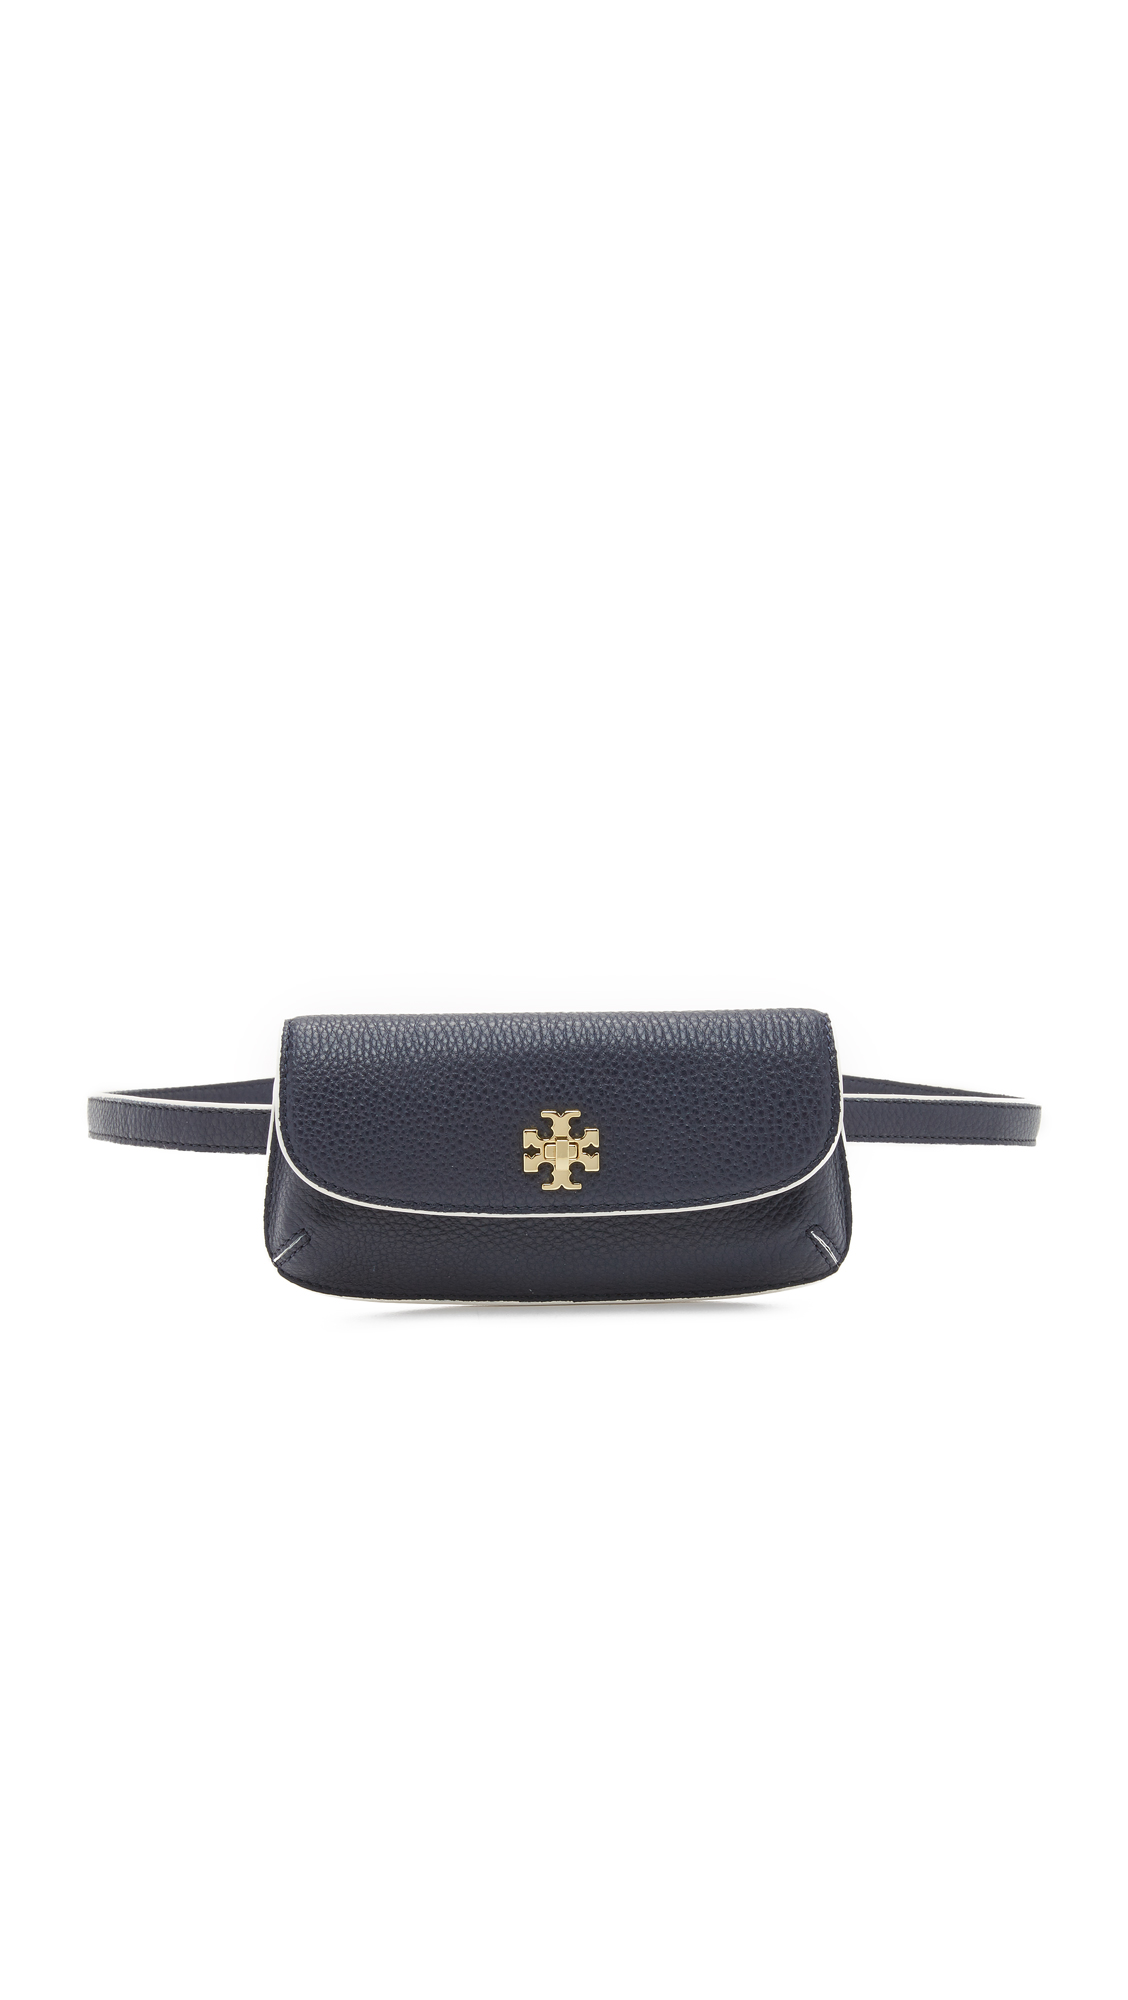 d5d53eb2bed57 Tory Burch Diana Belt Bag